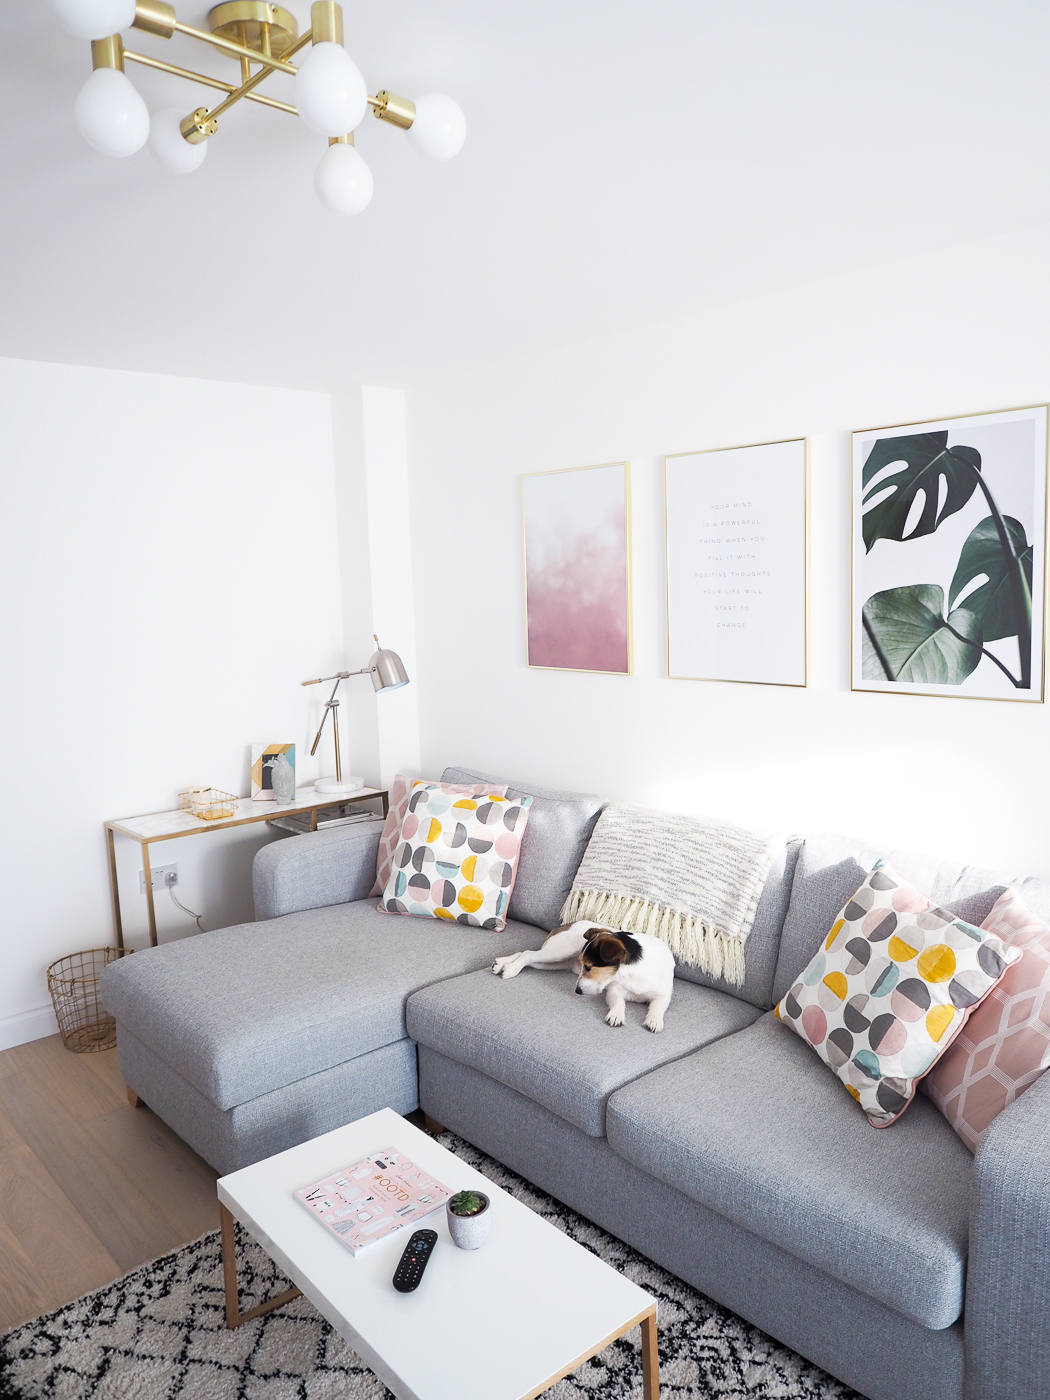 Gold And Gray Living Room: Pink, Grey & Gold Decor - Bang On Style